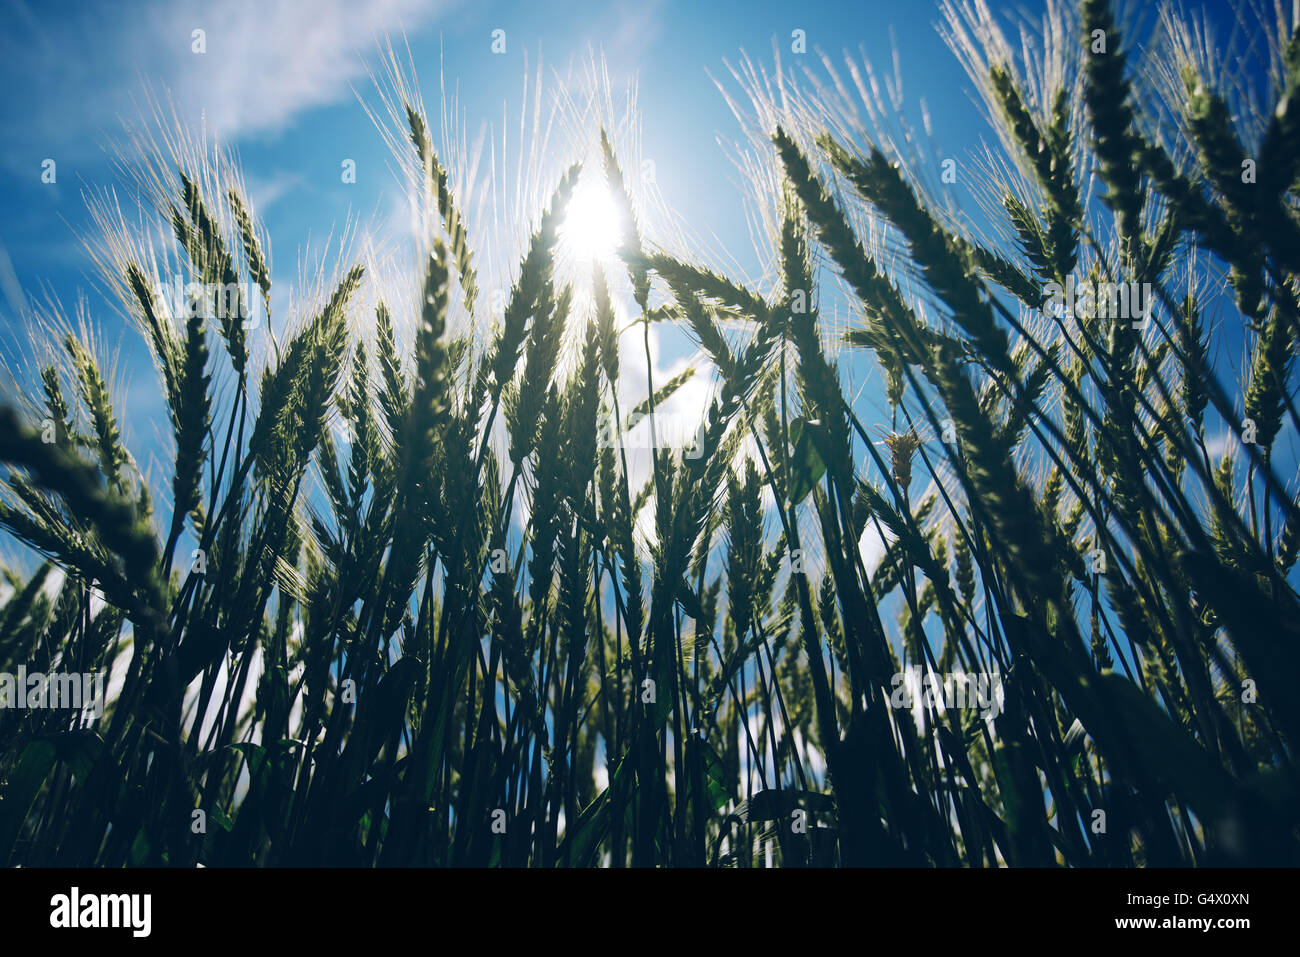 Low angle view of retro toned wheat field against summer sun, crops growth and successful agricultural production - Stock Image